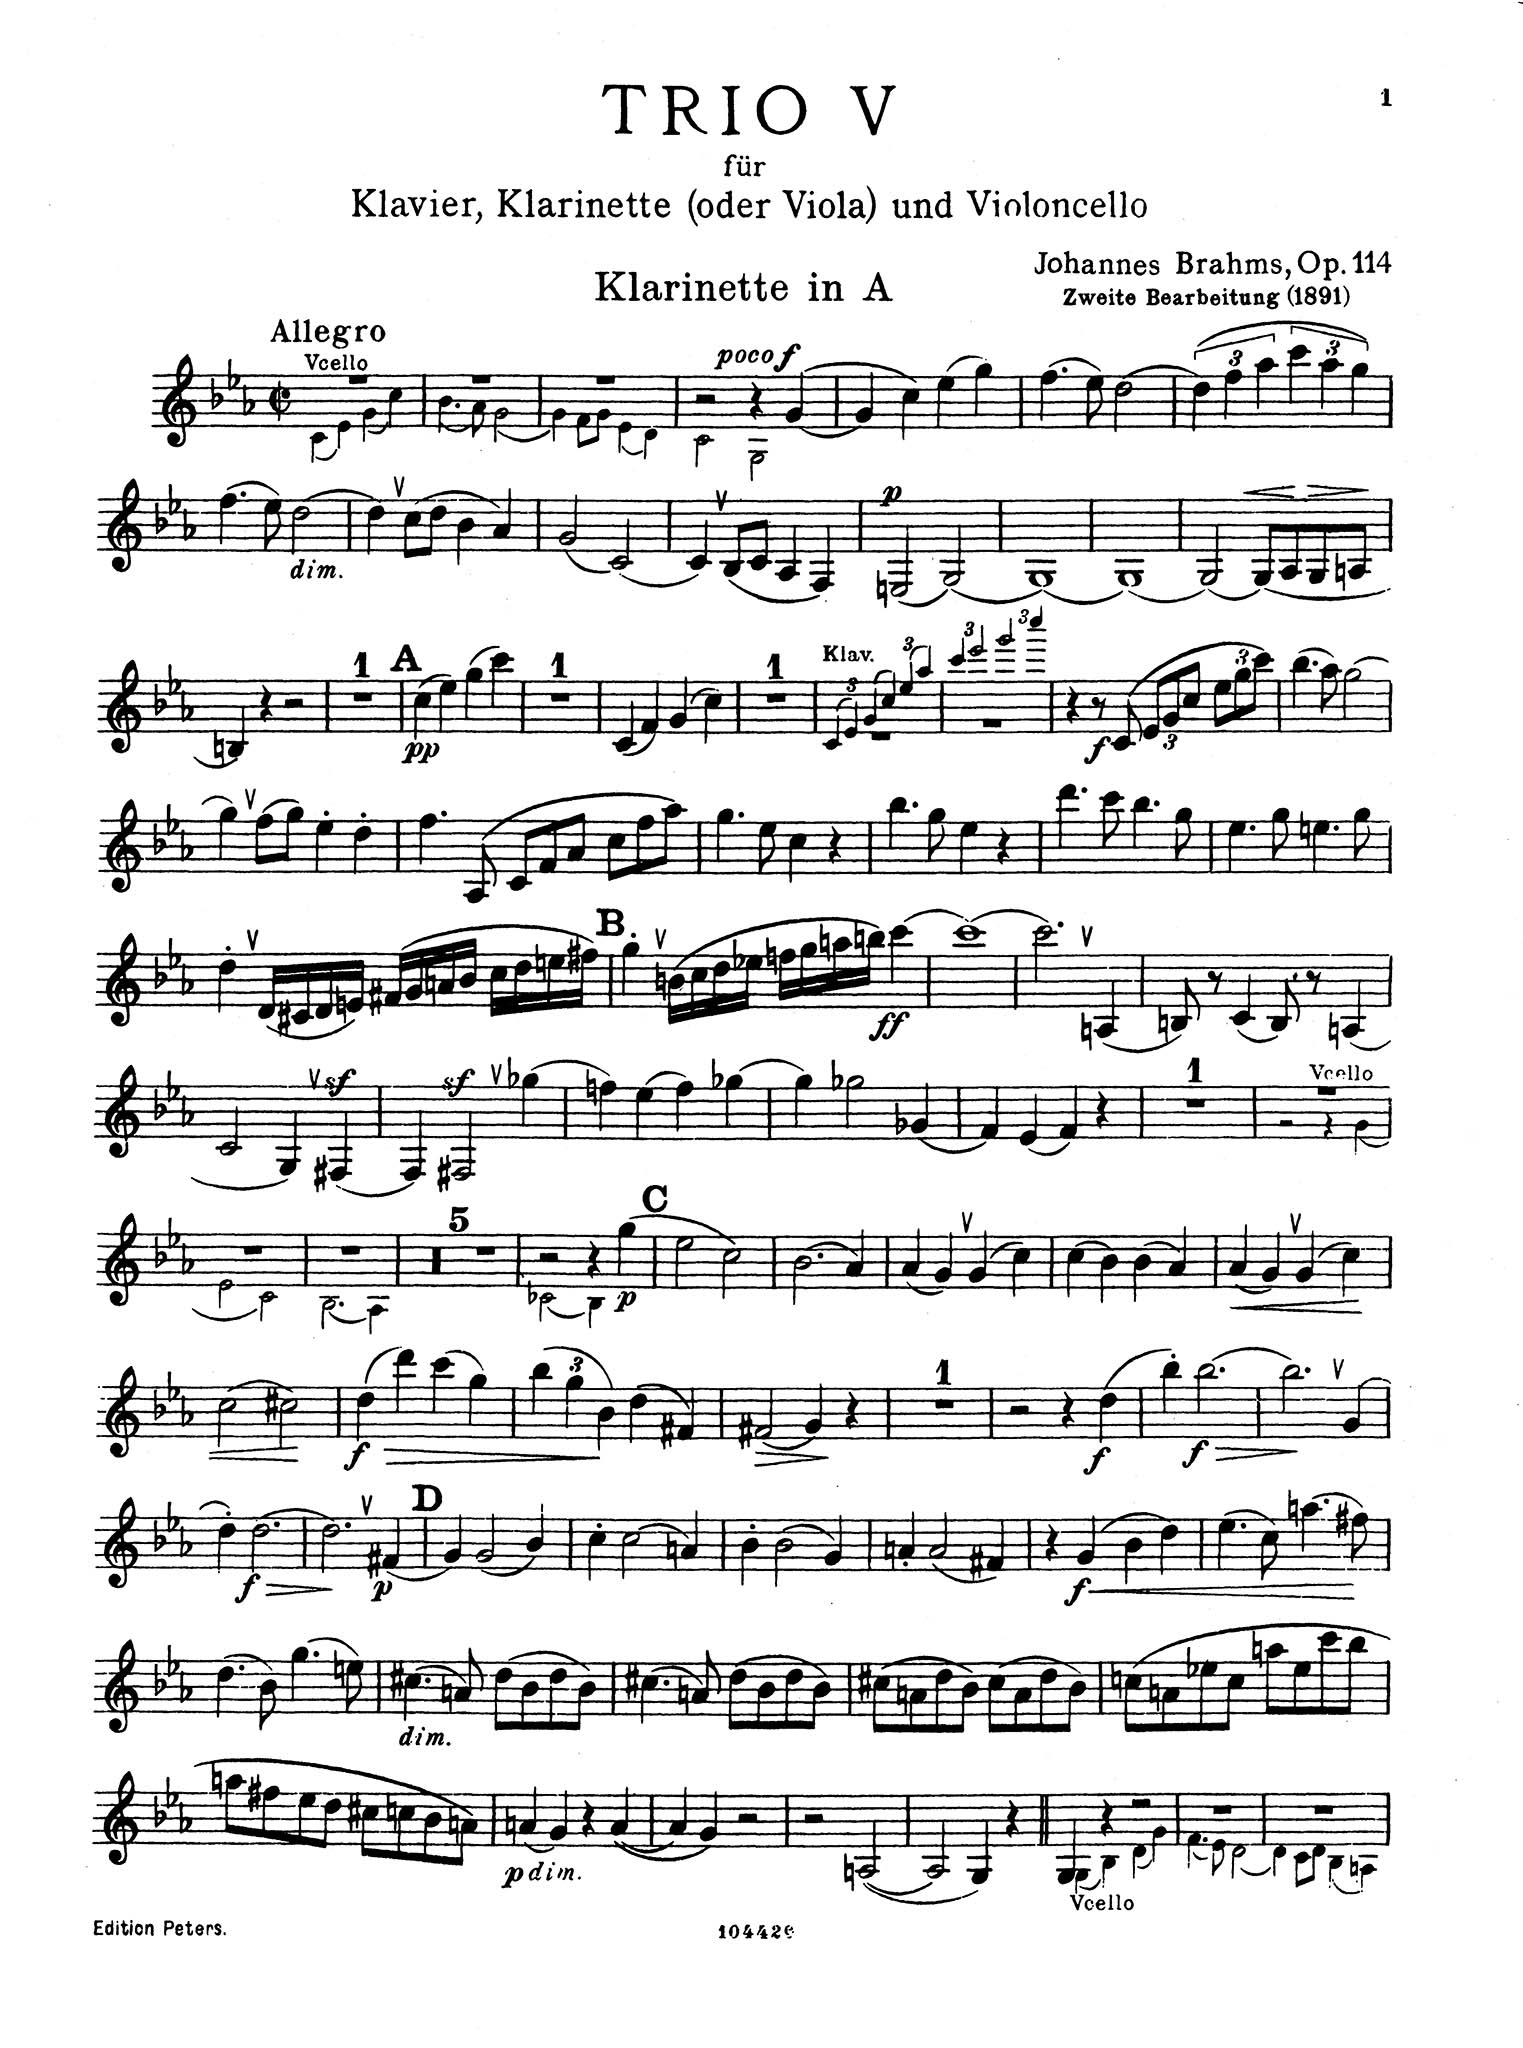 Clarinet Trio in A Minor, Op. 114 Clarinet part